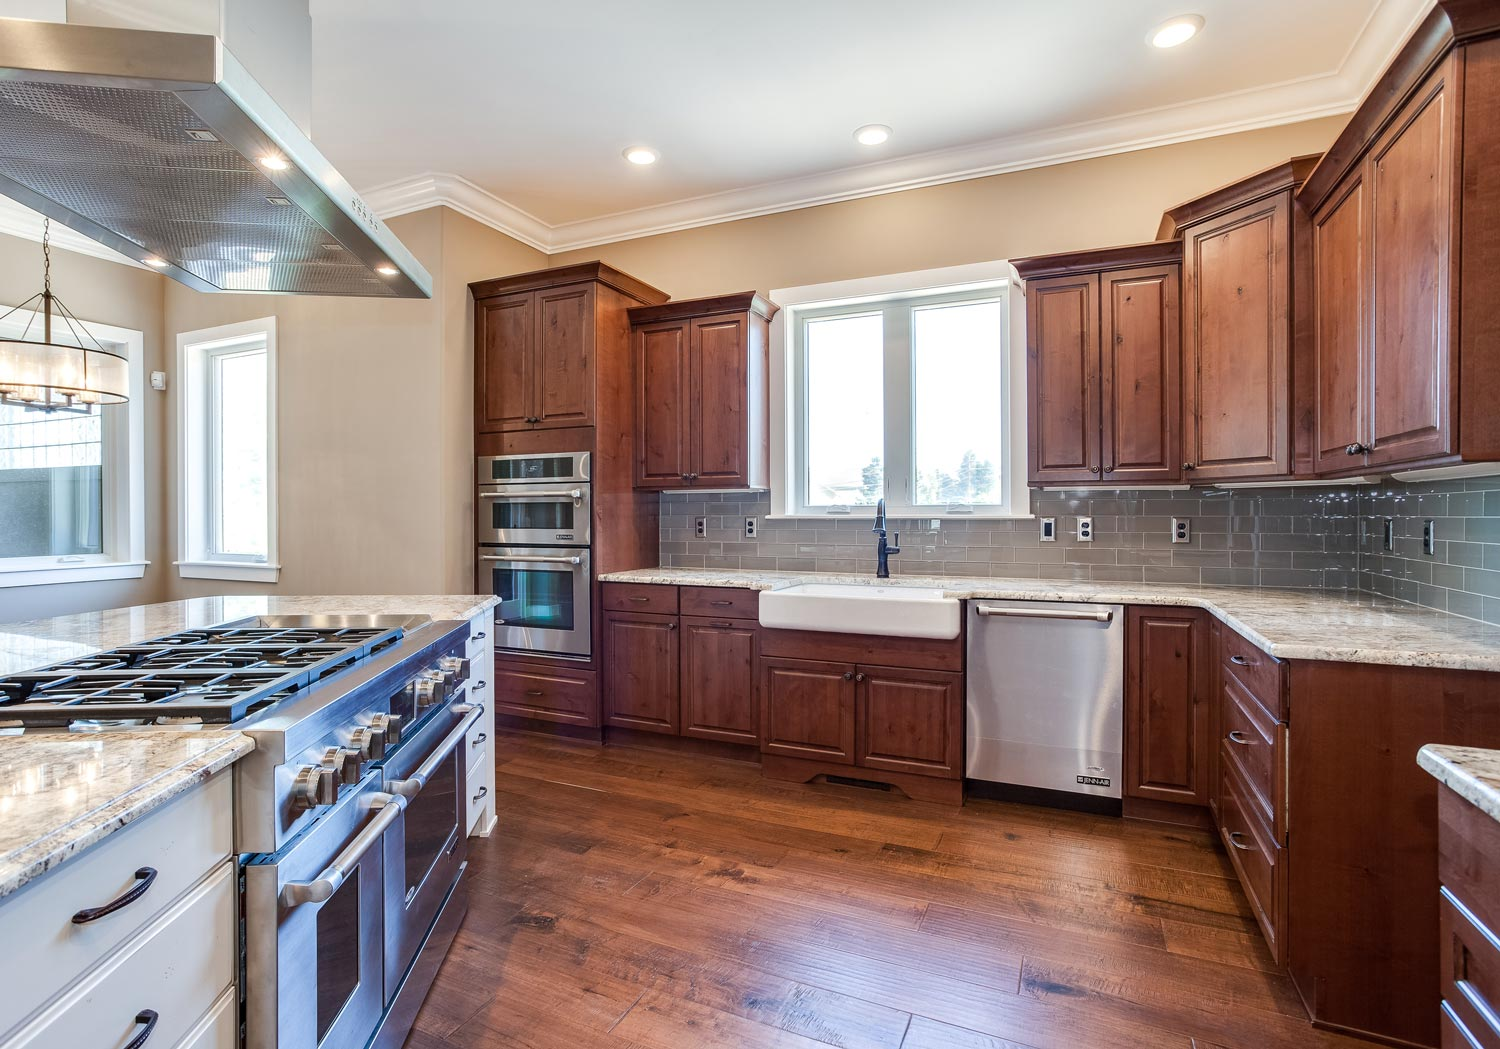 New center island kitchen design in castle rock jm for Kitchen center island cabinets